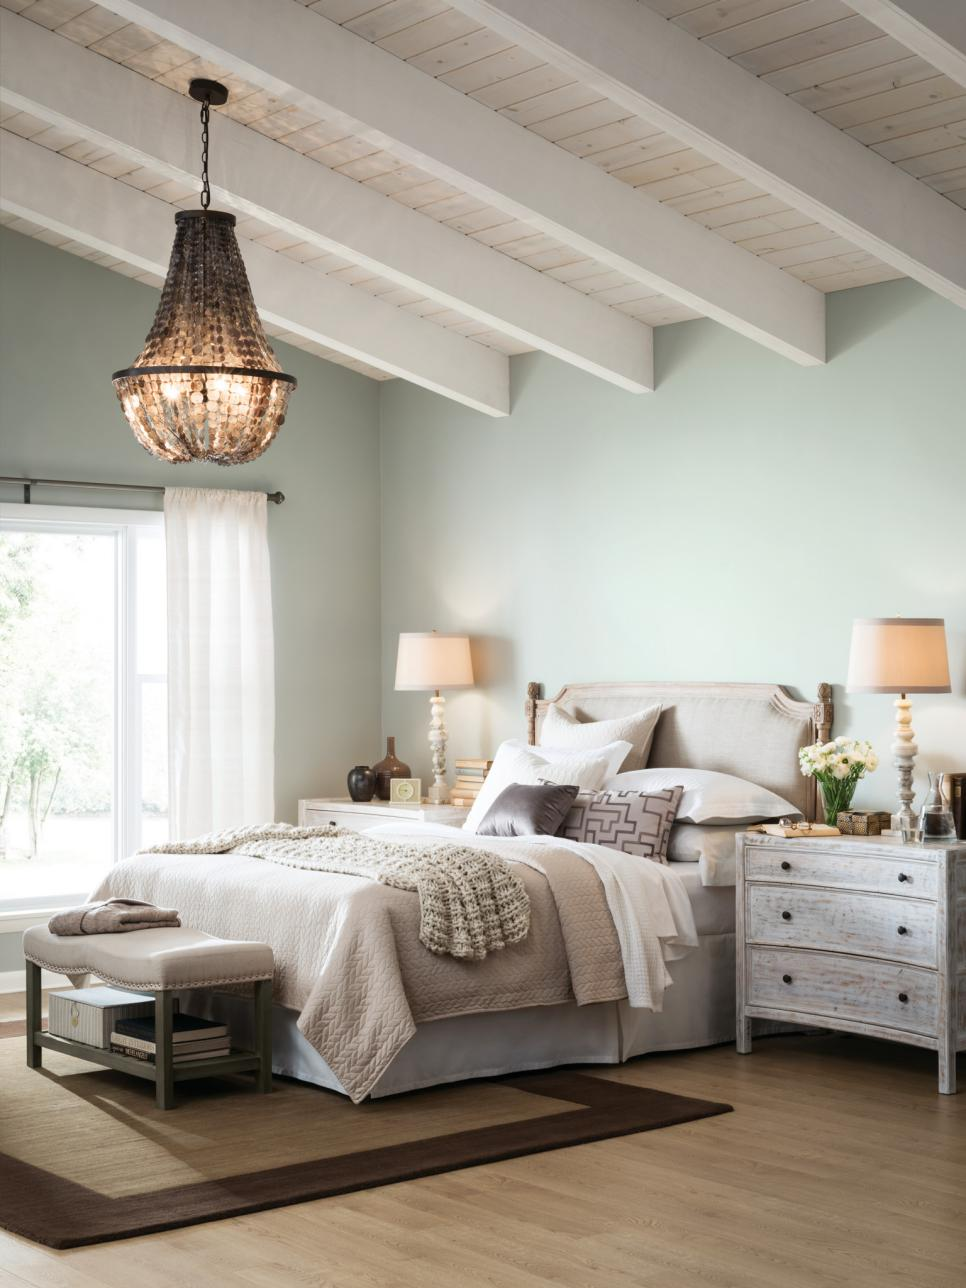 See more ideas about curtains, curtains bedroom, home. 25+ Master Bedroom Decorating Ideas , Designs   Design